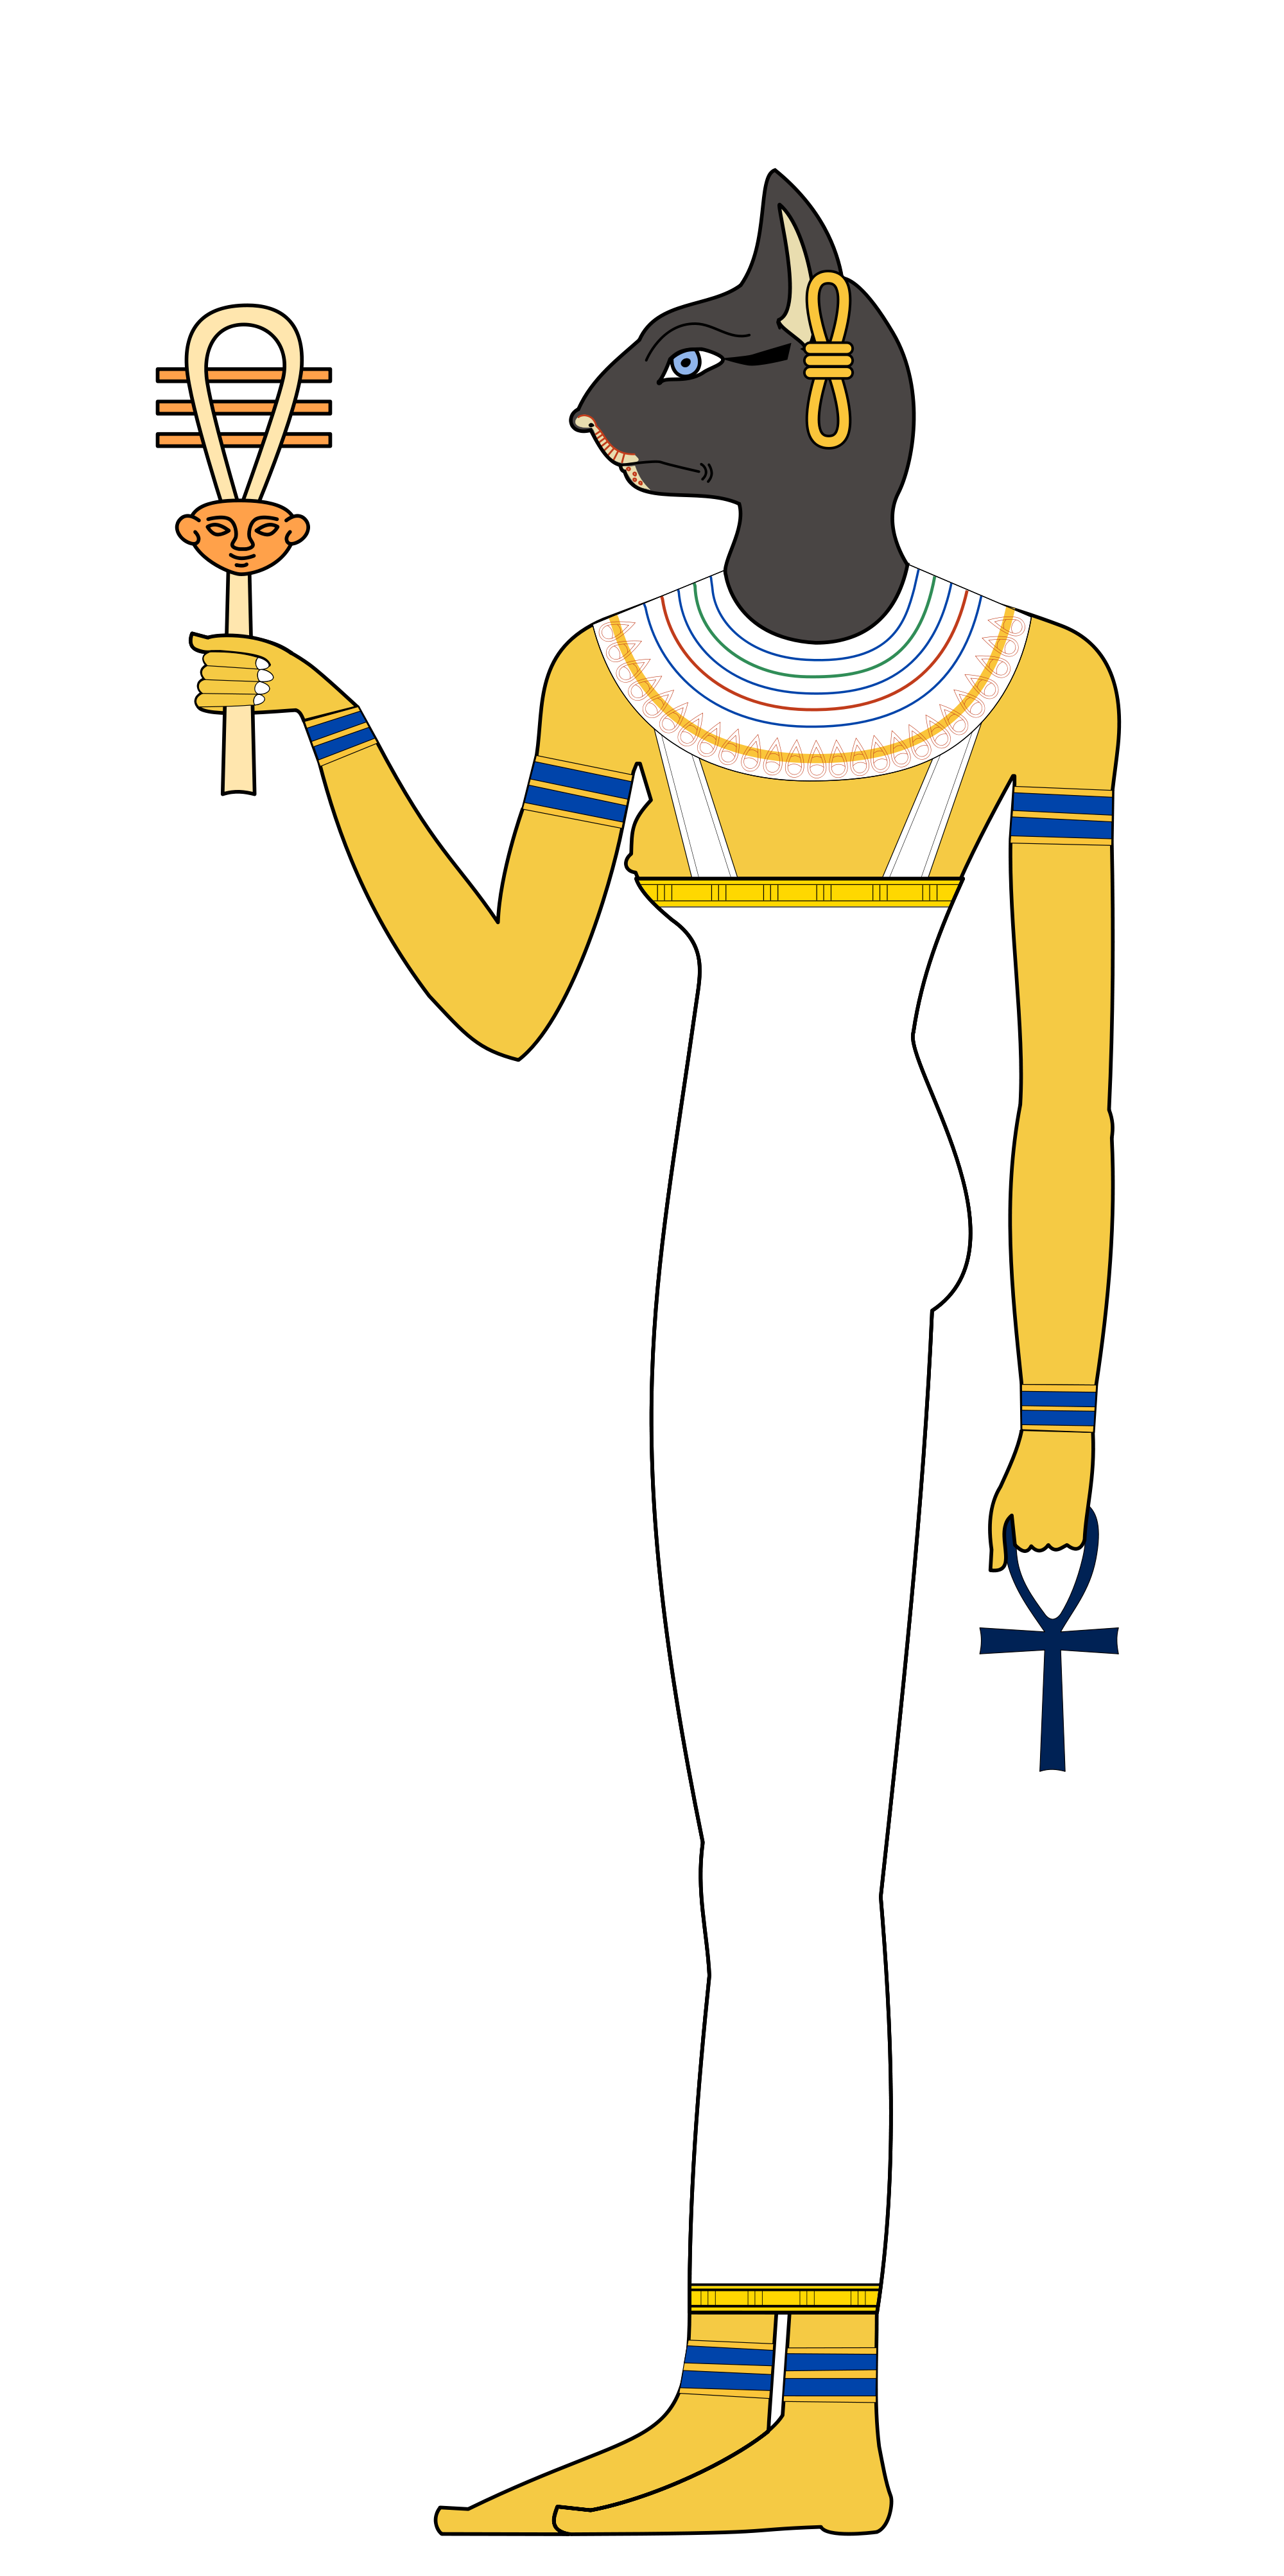 bastet drawing female goddess